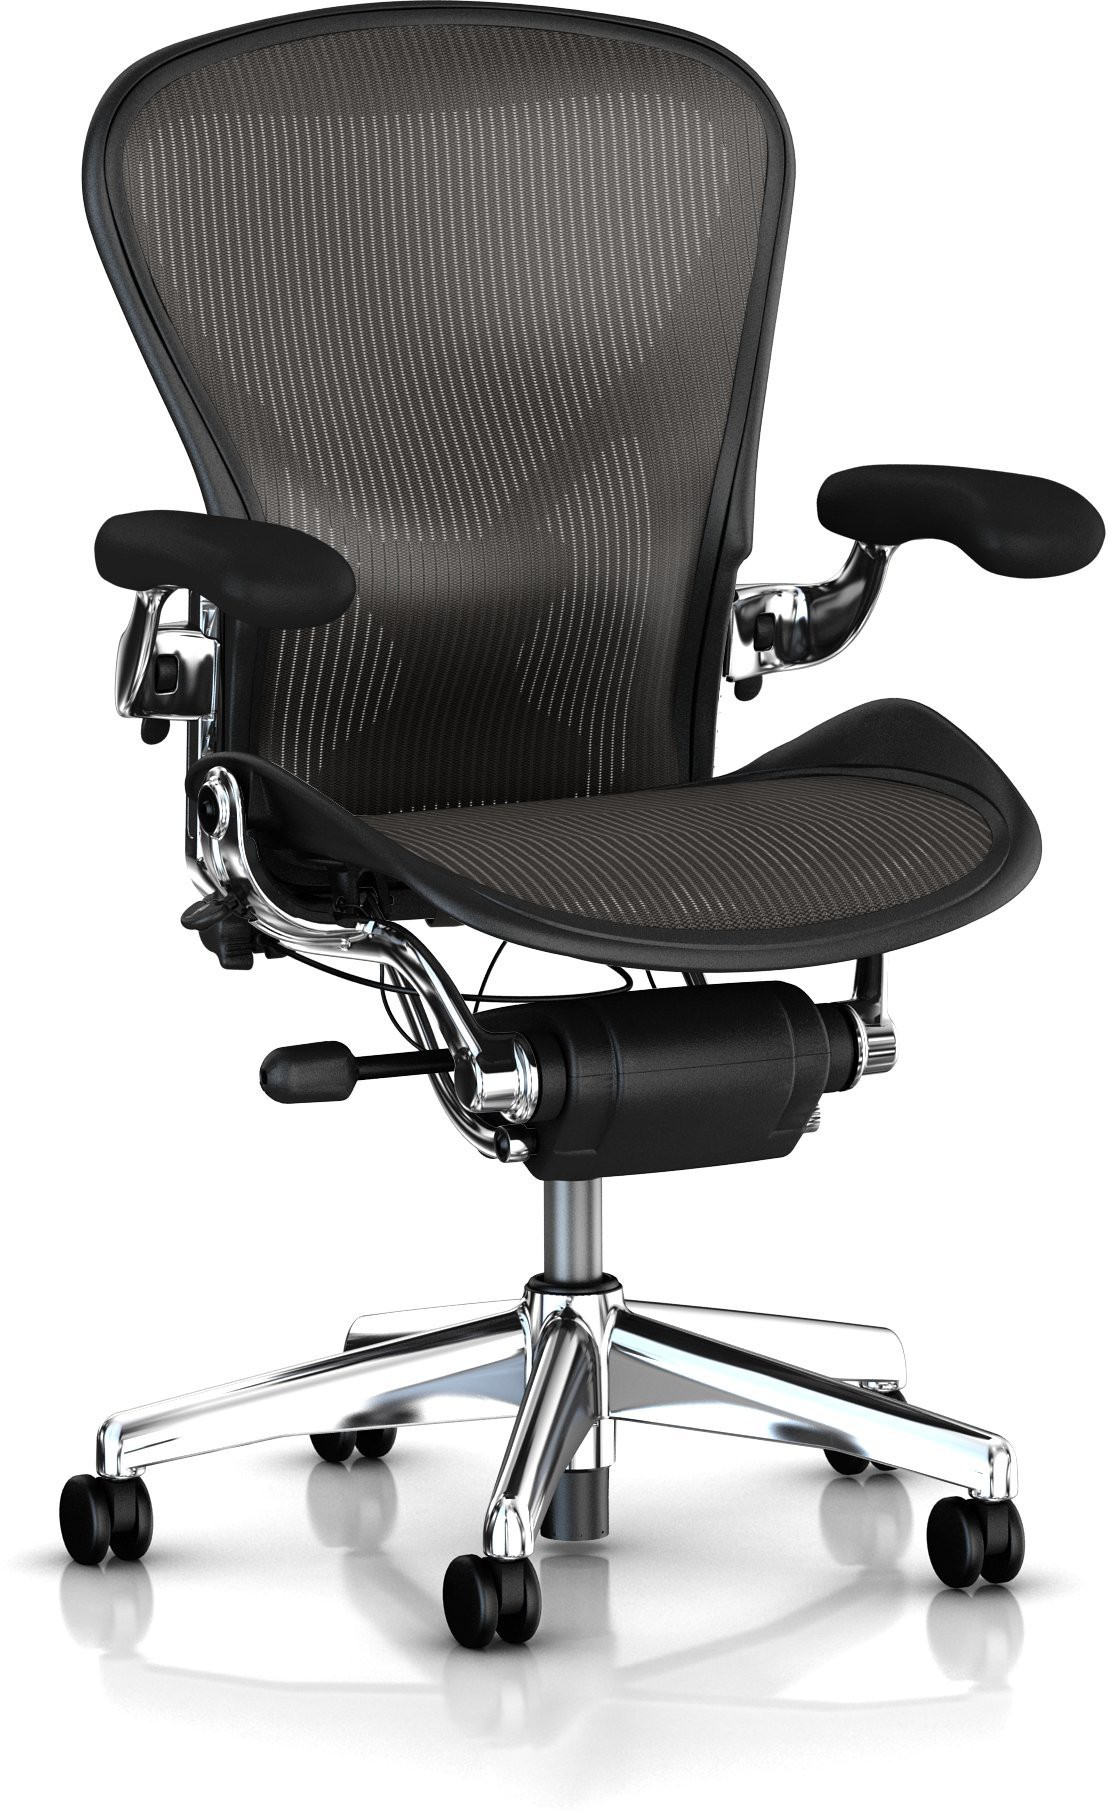 View HermanMiller Aeron - Classic Carbon Pellicle : Polish Aluminum base : Pellicle Backrest and Seat NA Office Chair(Black) Furniture (HermanMiller)